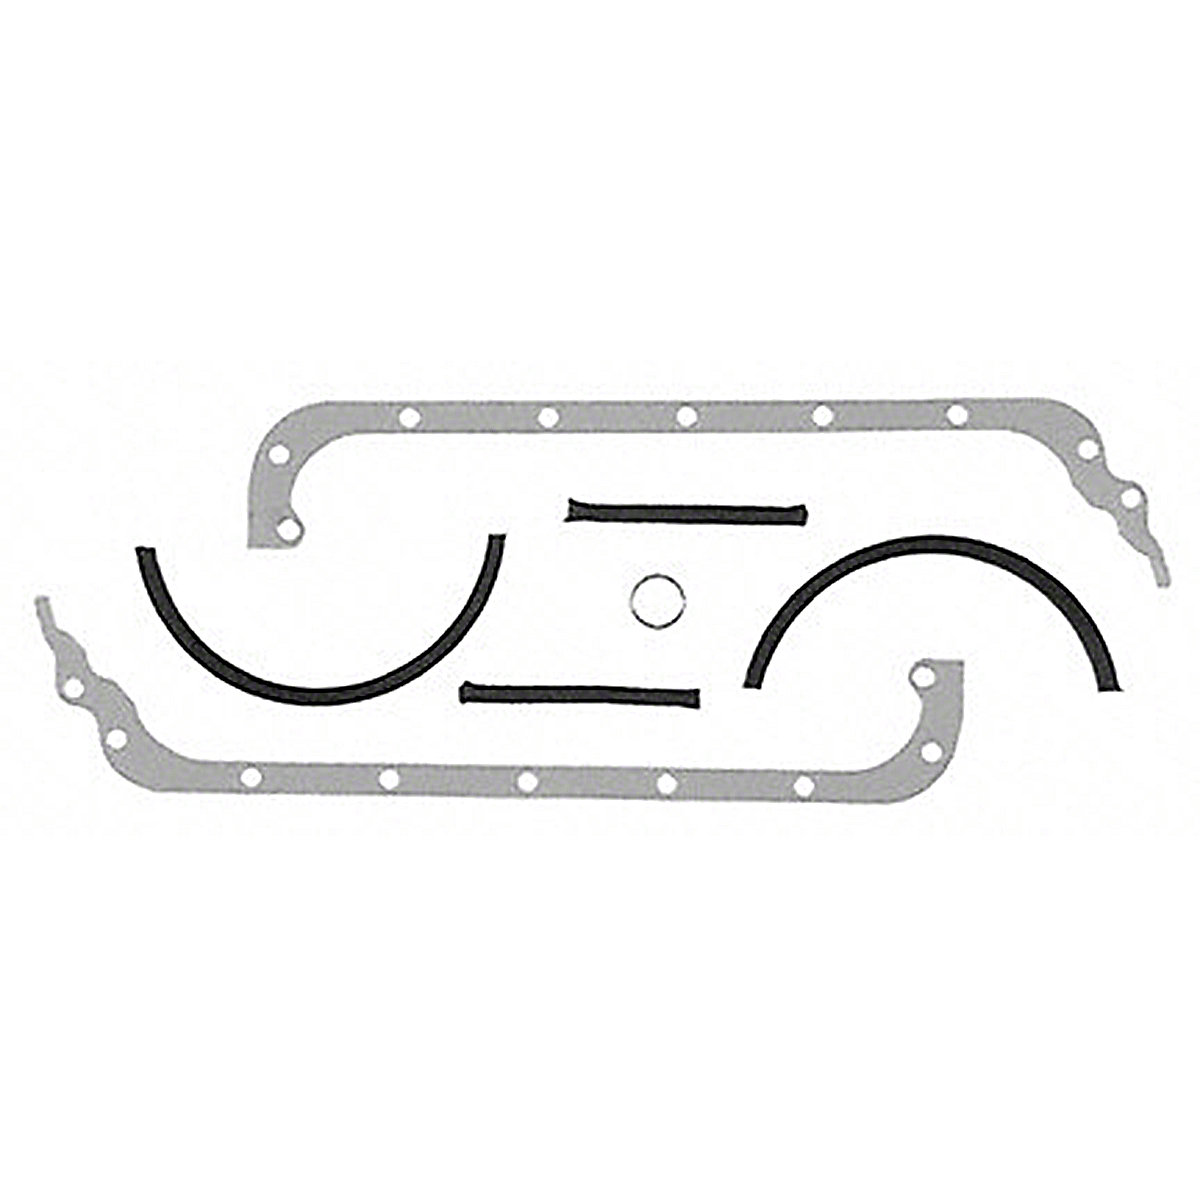 Oil Pan Gasket Set For Oliver: 44, Super 44, 440. Replaces PN#: 452265a, 452323a.